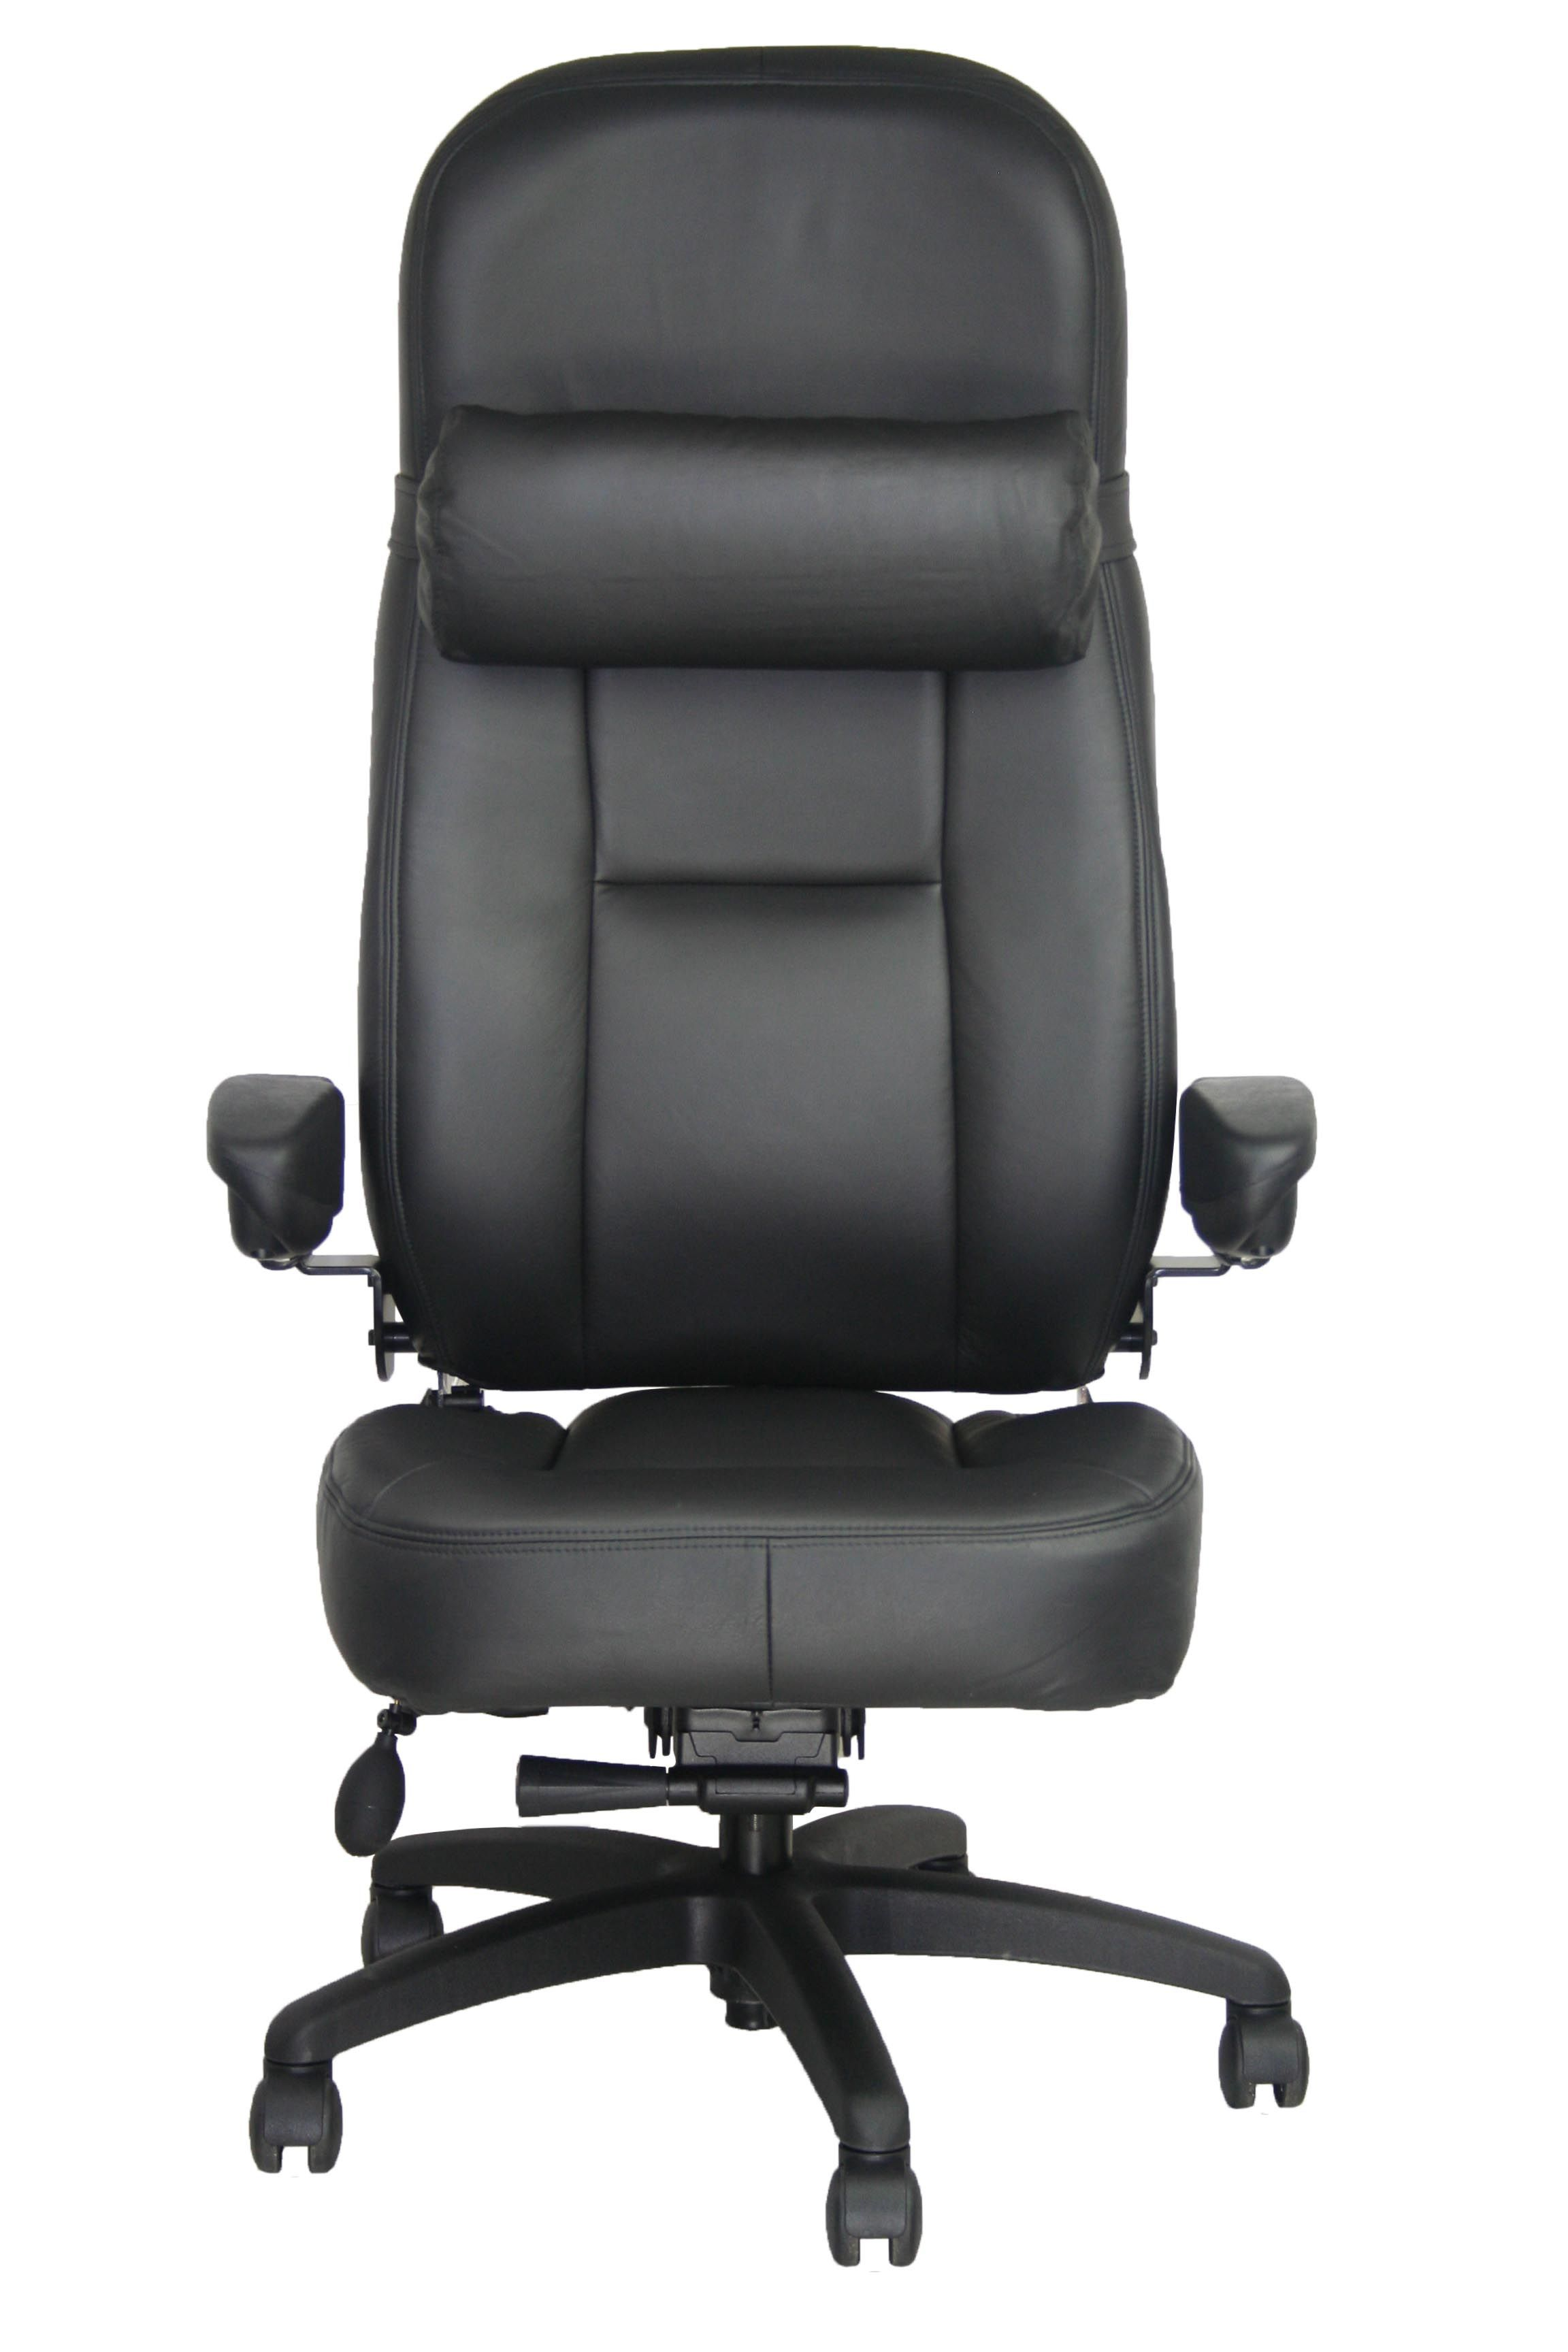 IRON HORSE Seating Big & Tall Contemporary home office